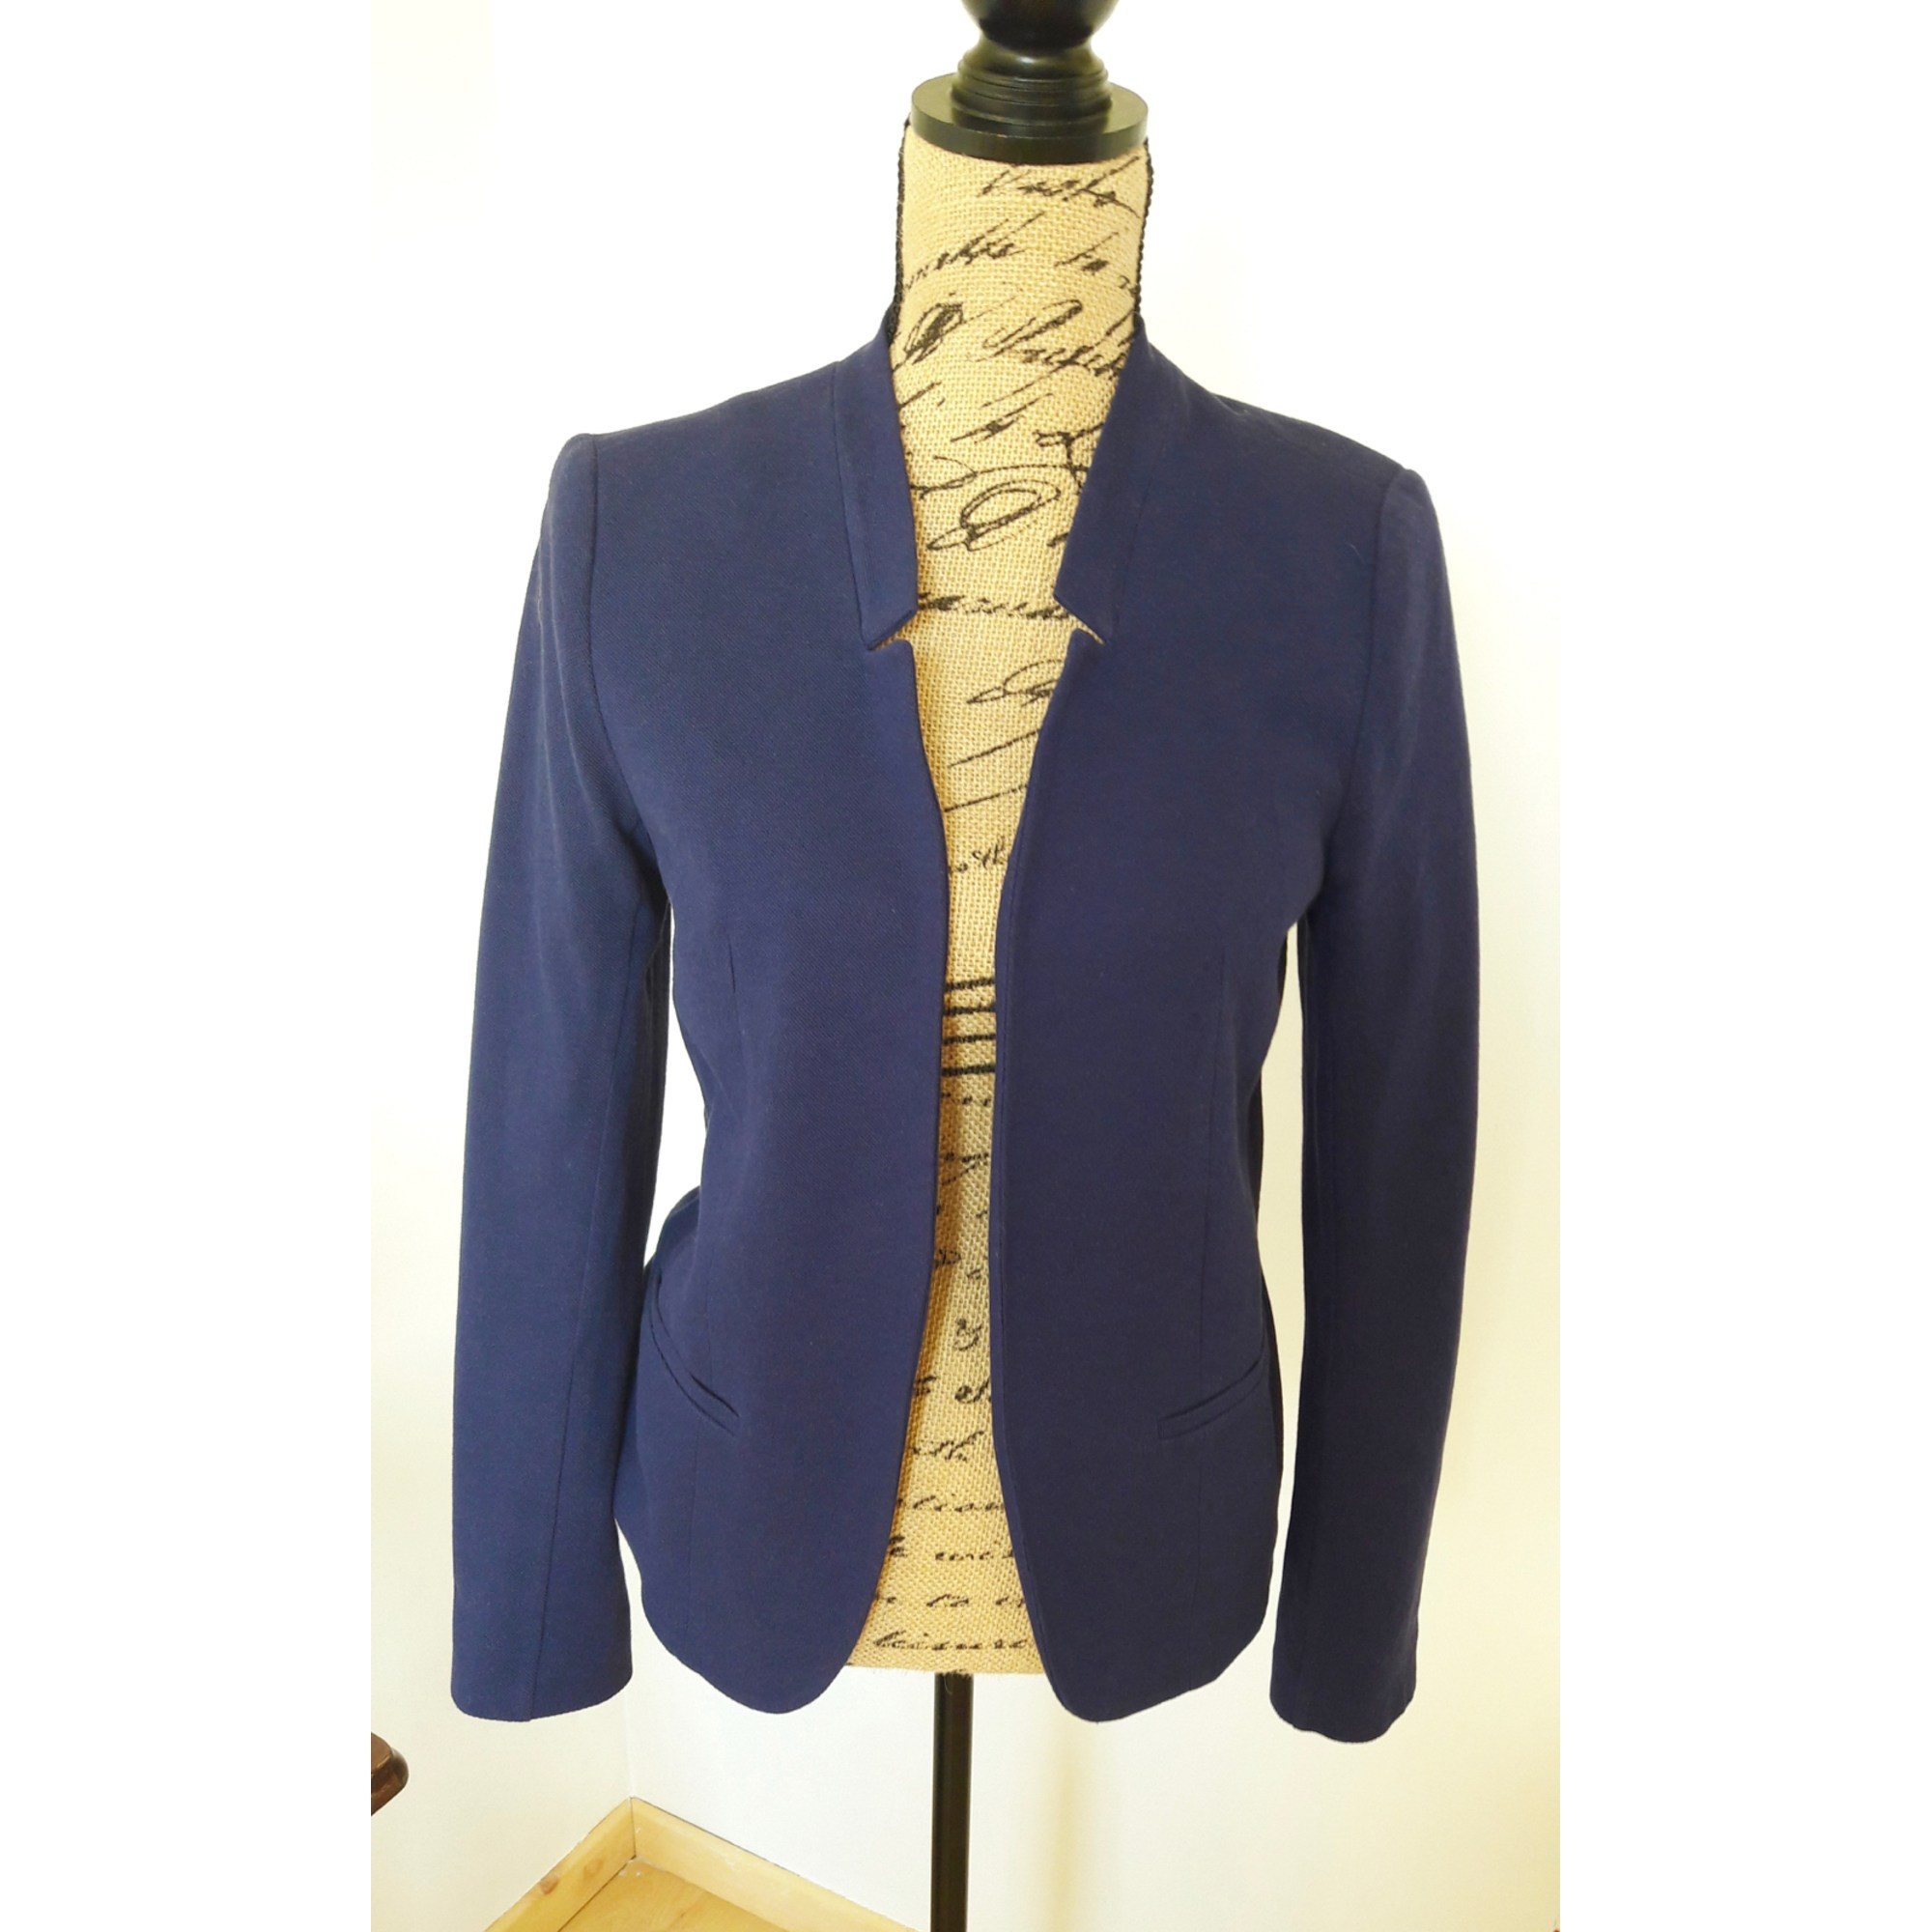 los angeles low price sale new arrive Blazer, veste tailleur